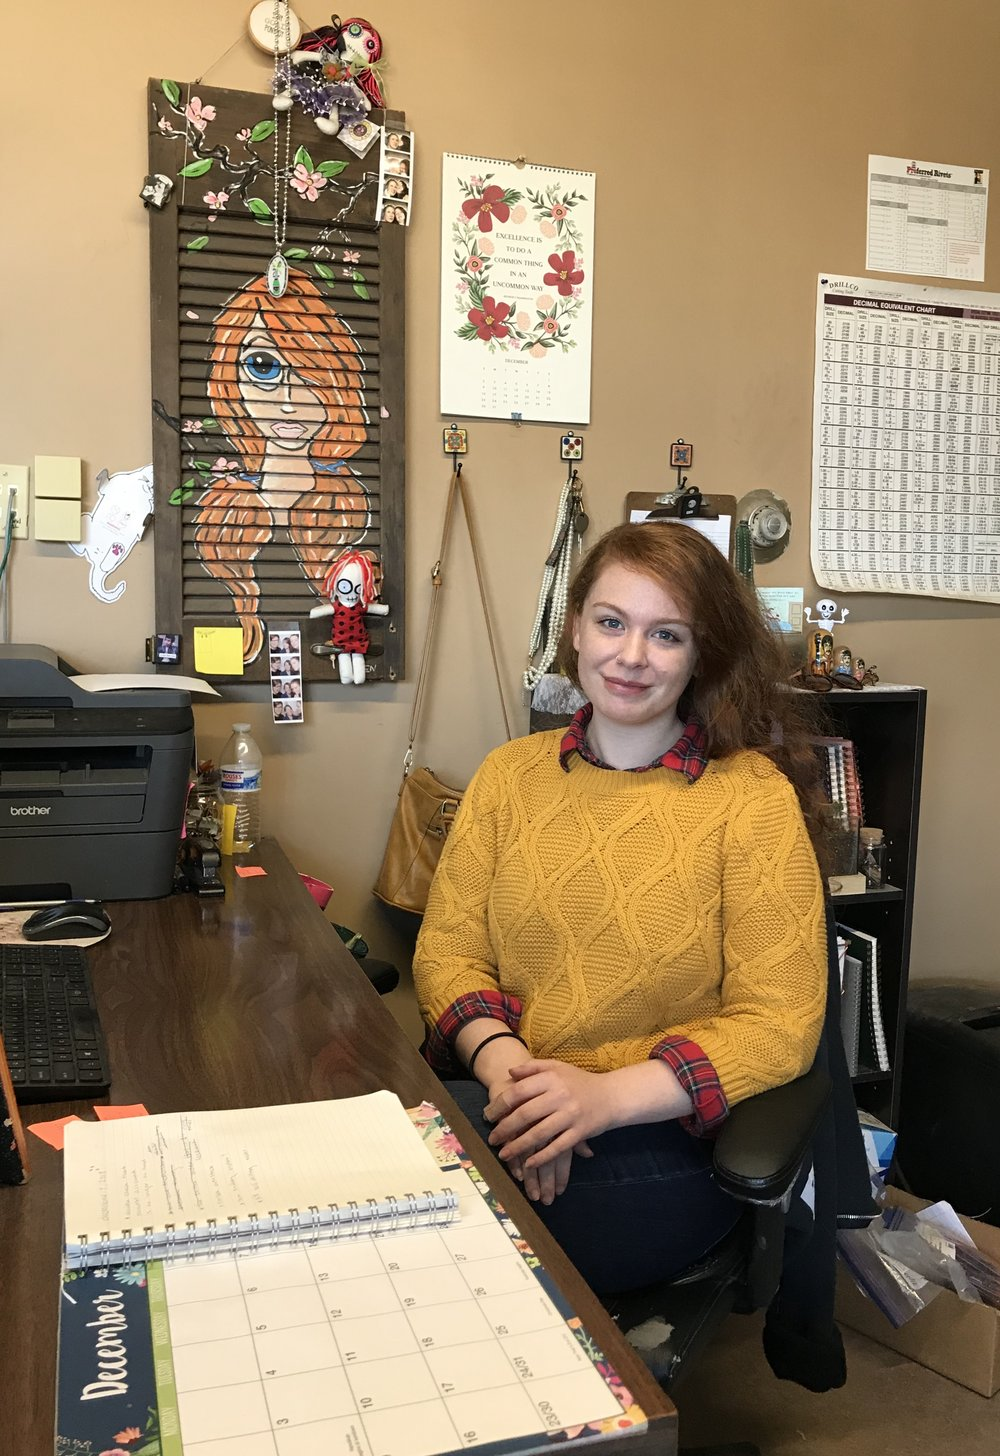 "SHELBY FALLO - INSIDE SALES REP""I'm Shelby and I am 23 years old. I've lived in Baldwin County for 16 years and have worked at Coastal for 5 years. I love working in inside sales because I enjoy the challenging atmosphere that keeps me constantly learning and strengthening my skills helpful both in and out of the workplace. What I like most about sales is the feeling of being an integral part of helping someone complete a unique project Outside of work I enjoy reading and taking pictures. If you have any questions or need a quote I'm happy to help, shelby@coastalindsupply.com """